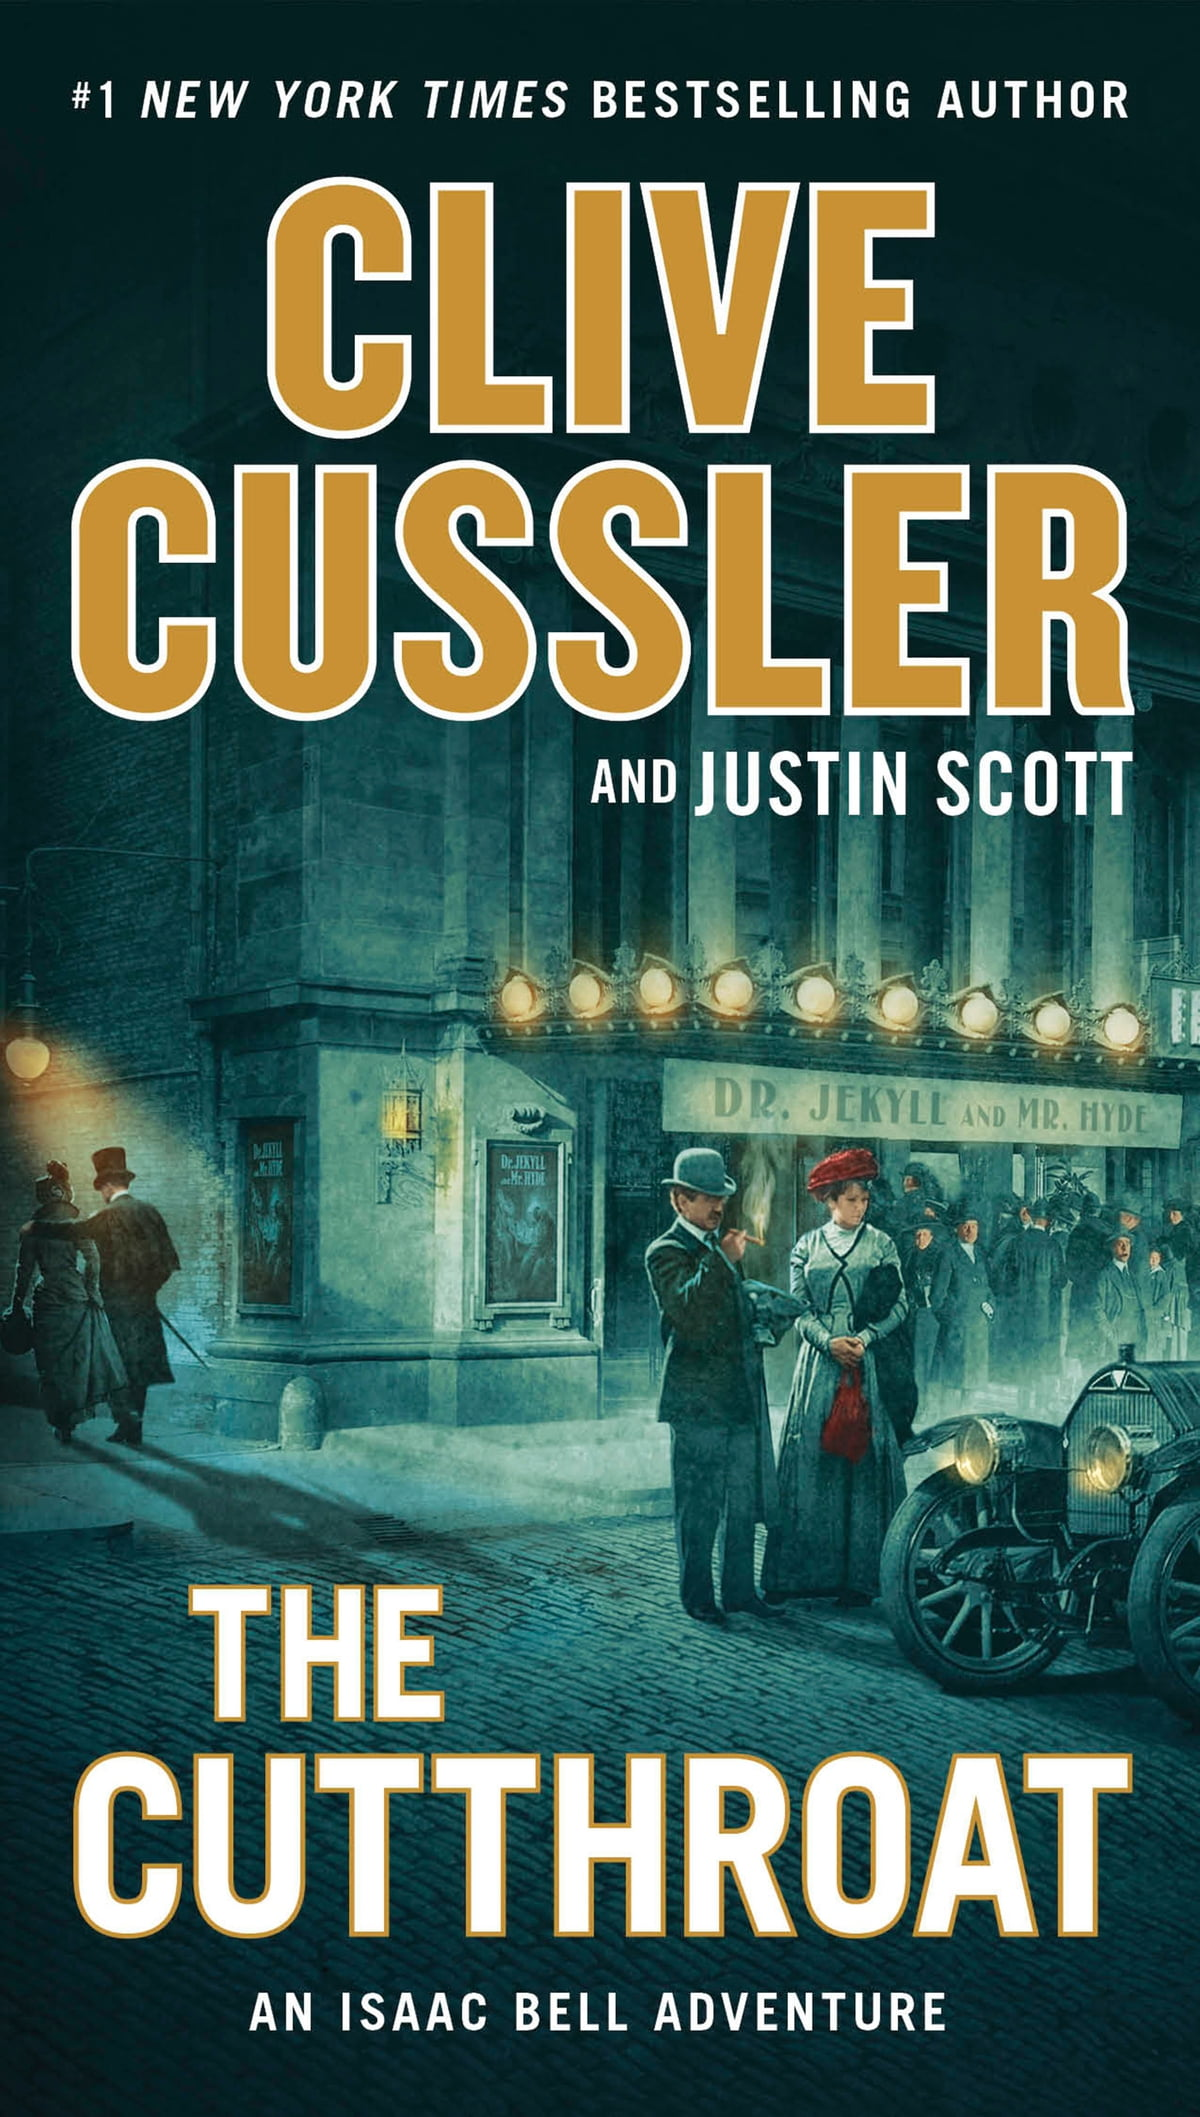 Clive Cussler Libros The Cutthroat Ebooks By Clive Cussler Rakuten Kobo